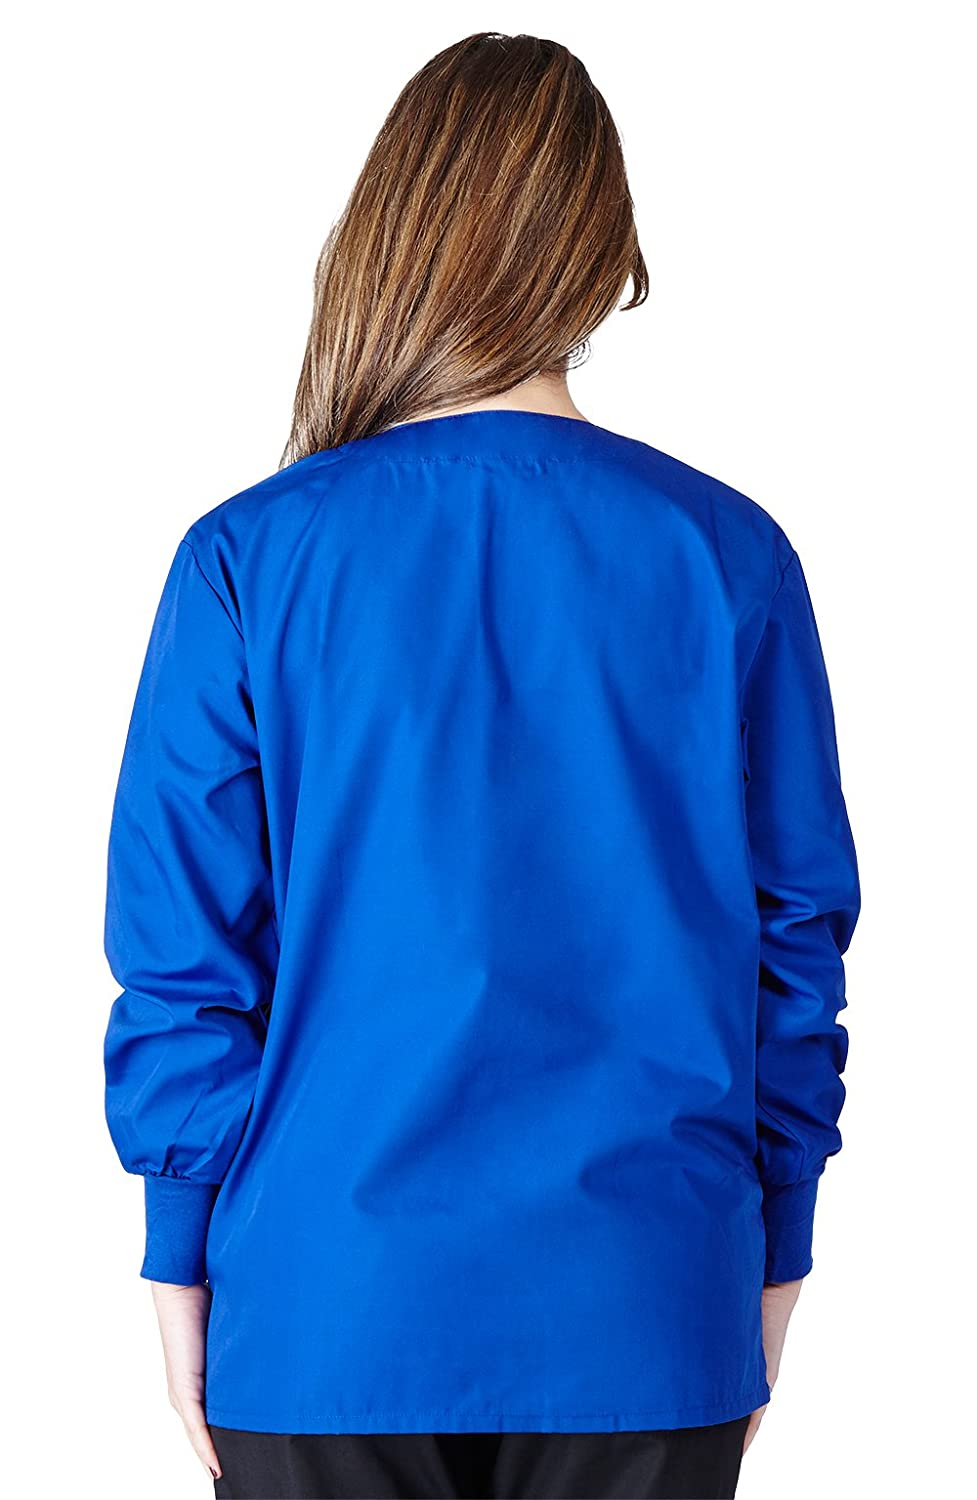 Natural Uniforms Womens Jacket Available Image 2